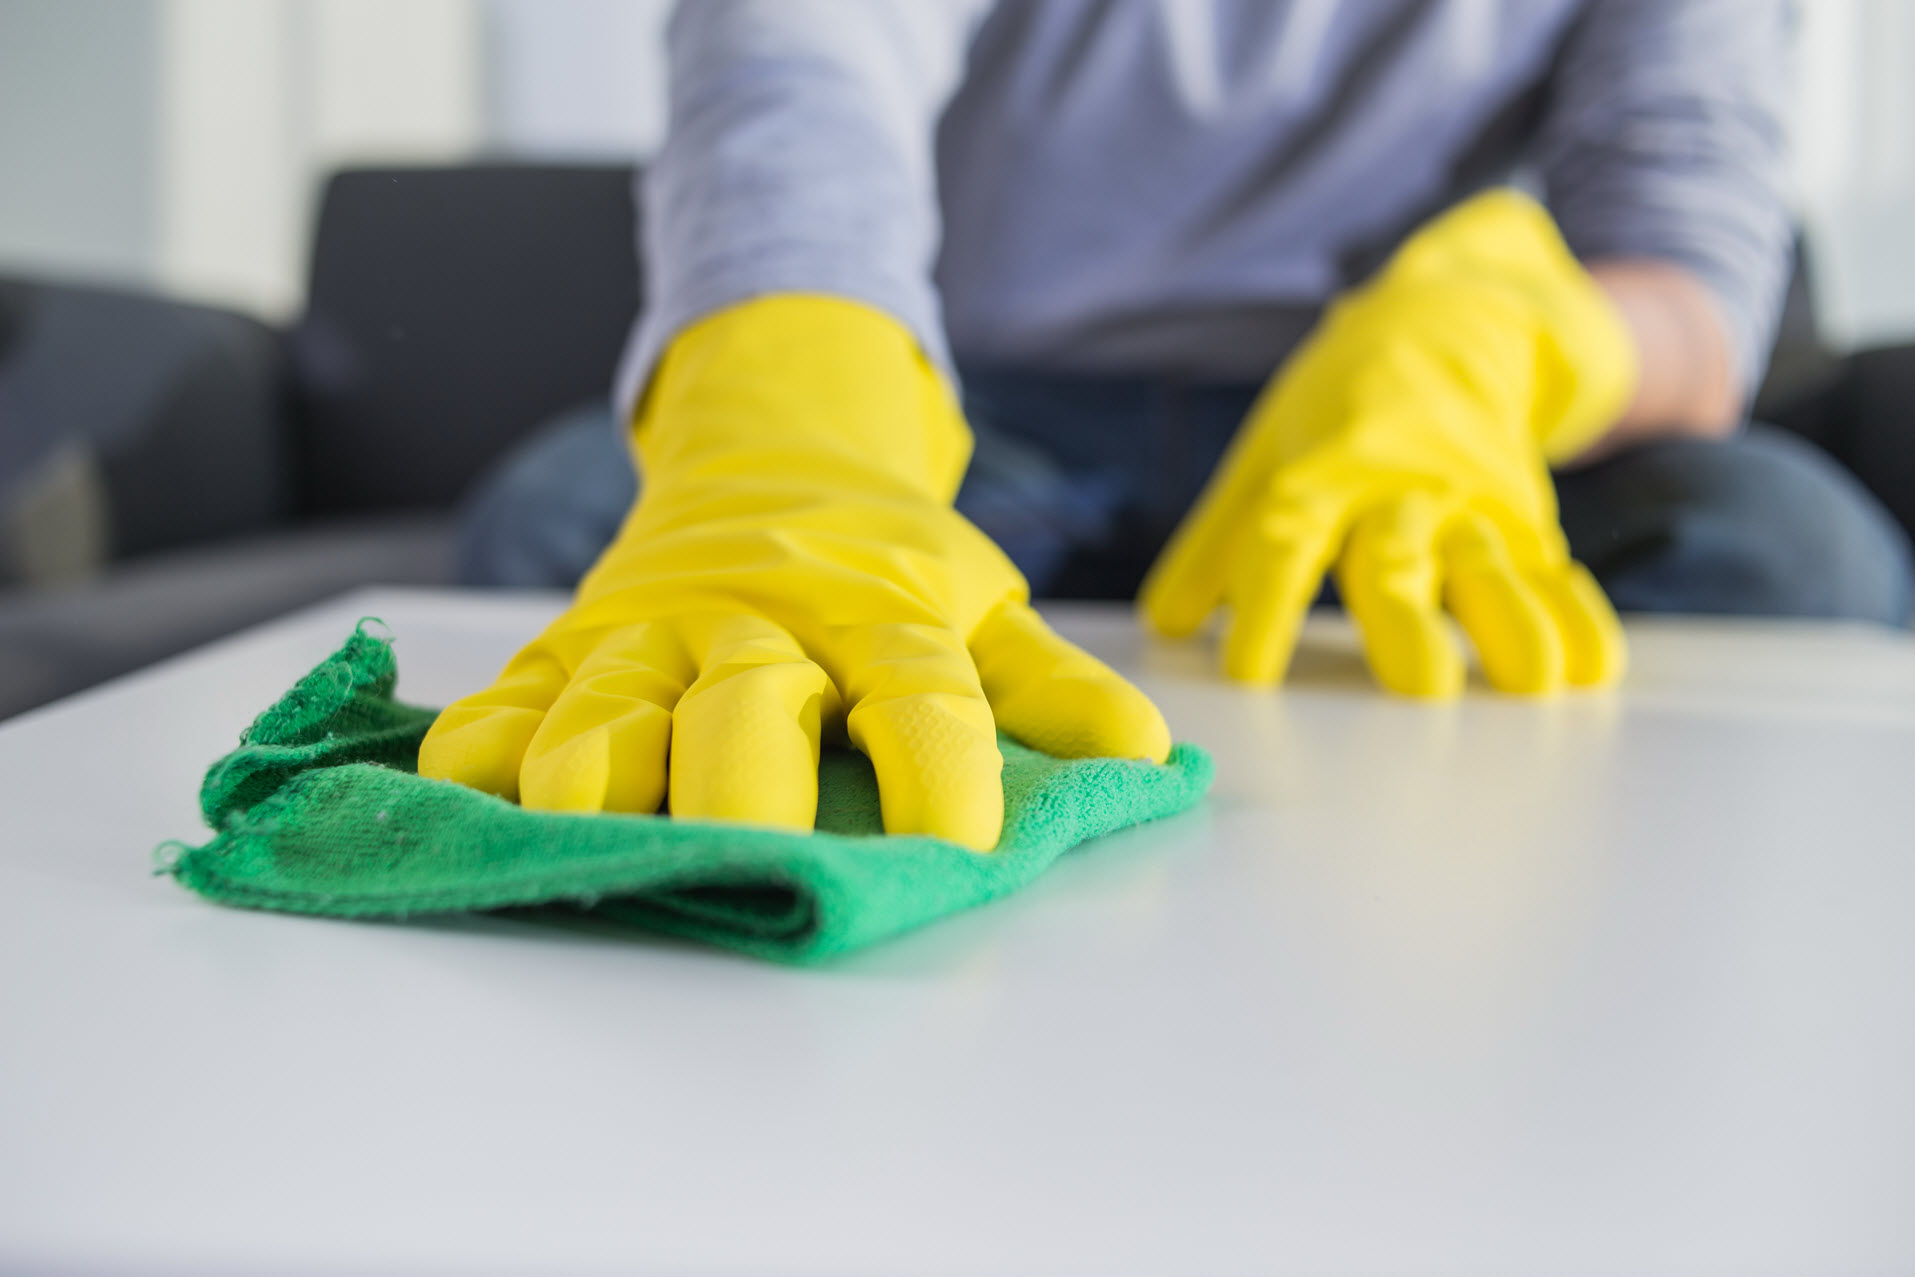 Things to do for keeping your house clean